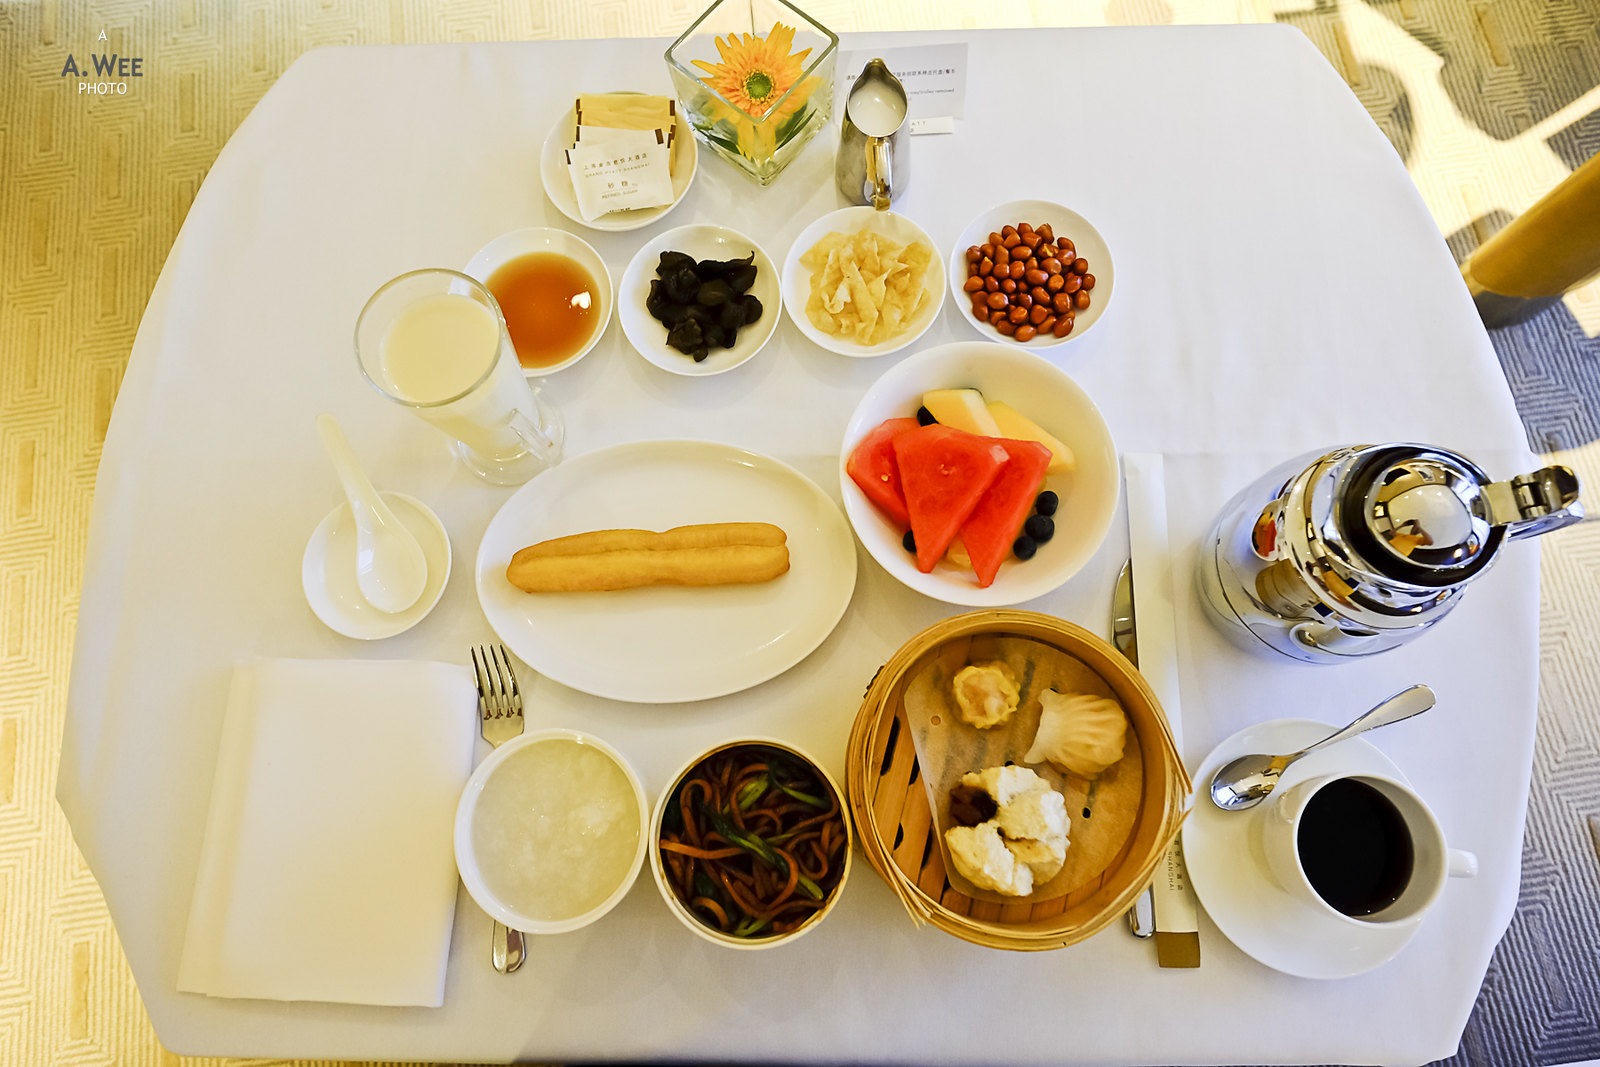 Chinese breakfast platter